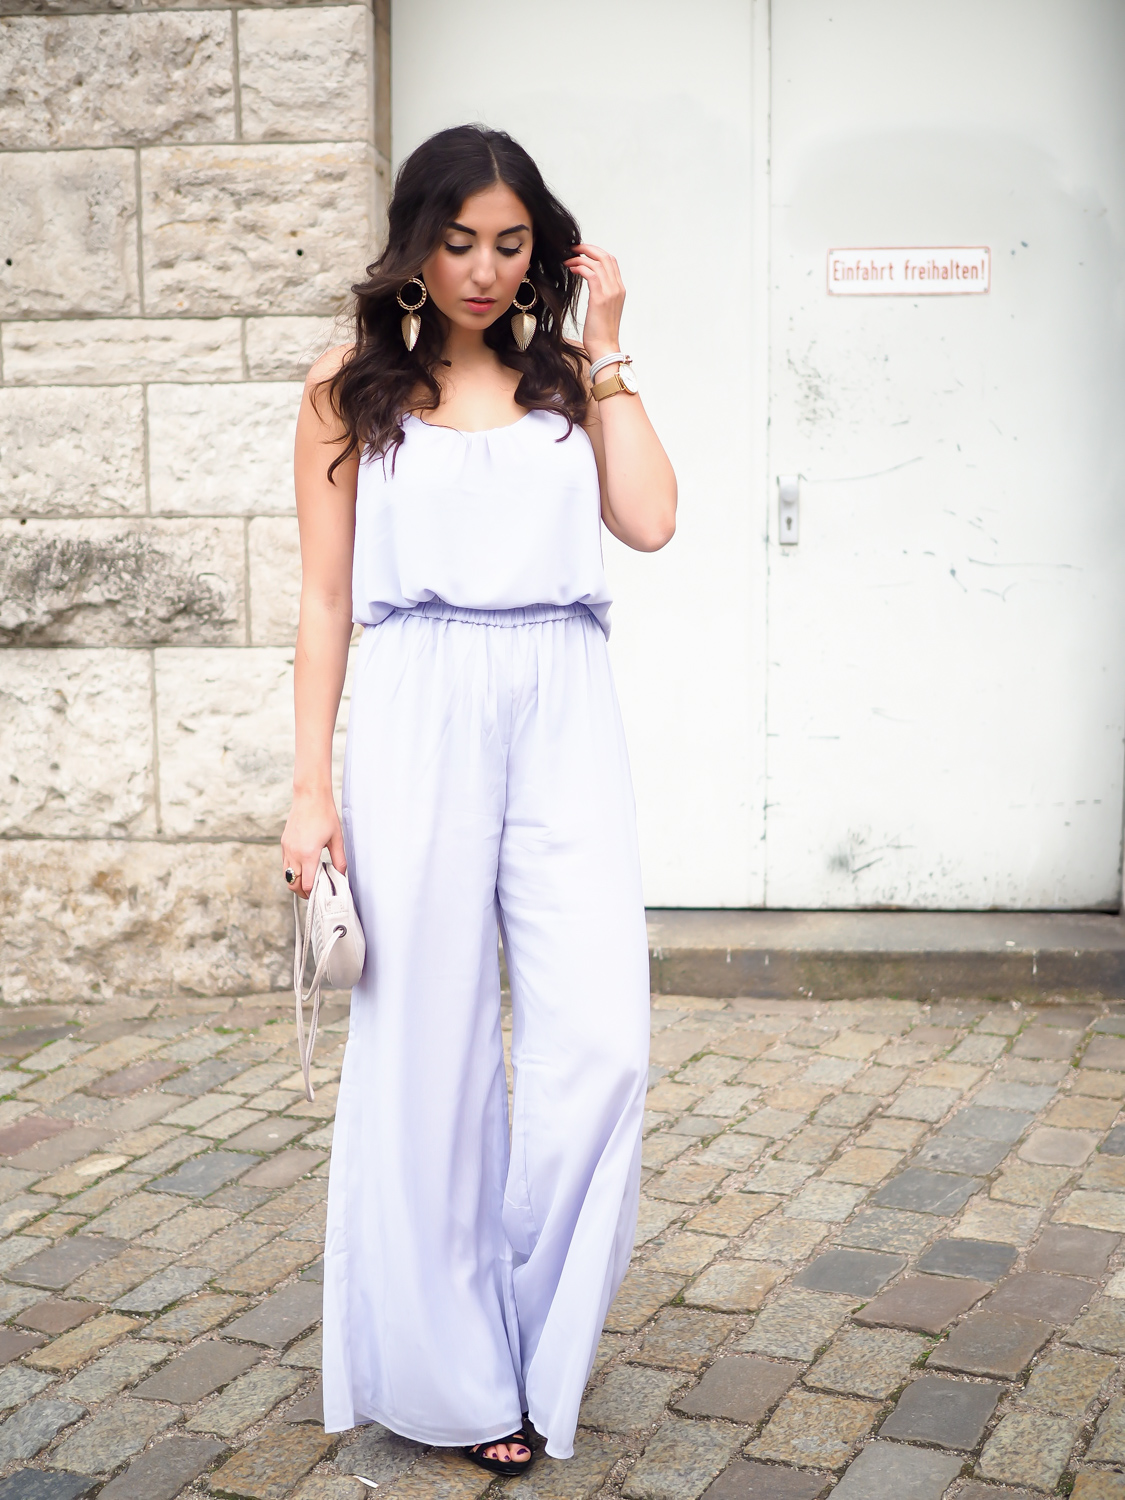 wpid-lilac-palazzo-pants-mango-strappy-top-hm-overall-wide-legs-trenchcoat-eleganz-night-out-big-earring-samieze-berlin-fashionblog-chic-streetstyle-summer-gala-event-11.jpg.jpeg